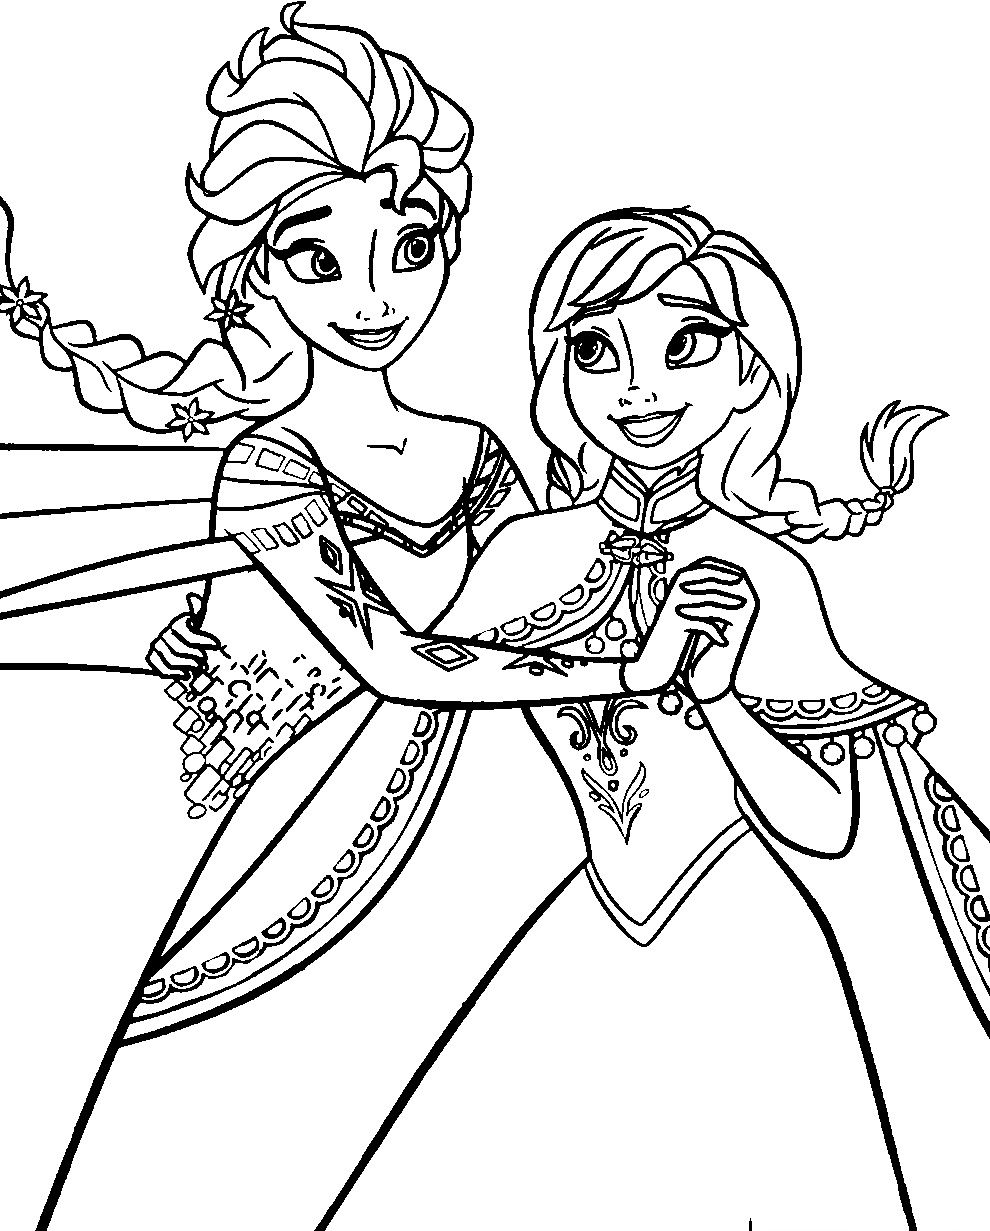 Coloring Pages Frozen Disney : Disney frozen coloring pages to download http